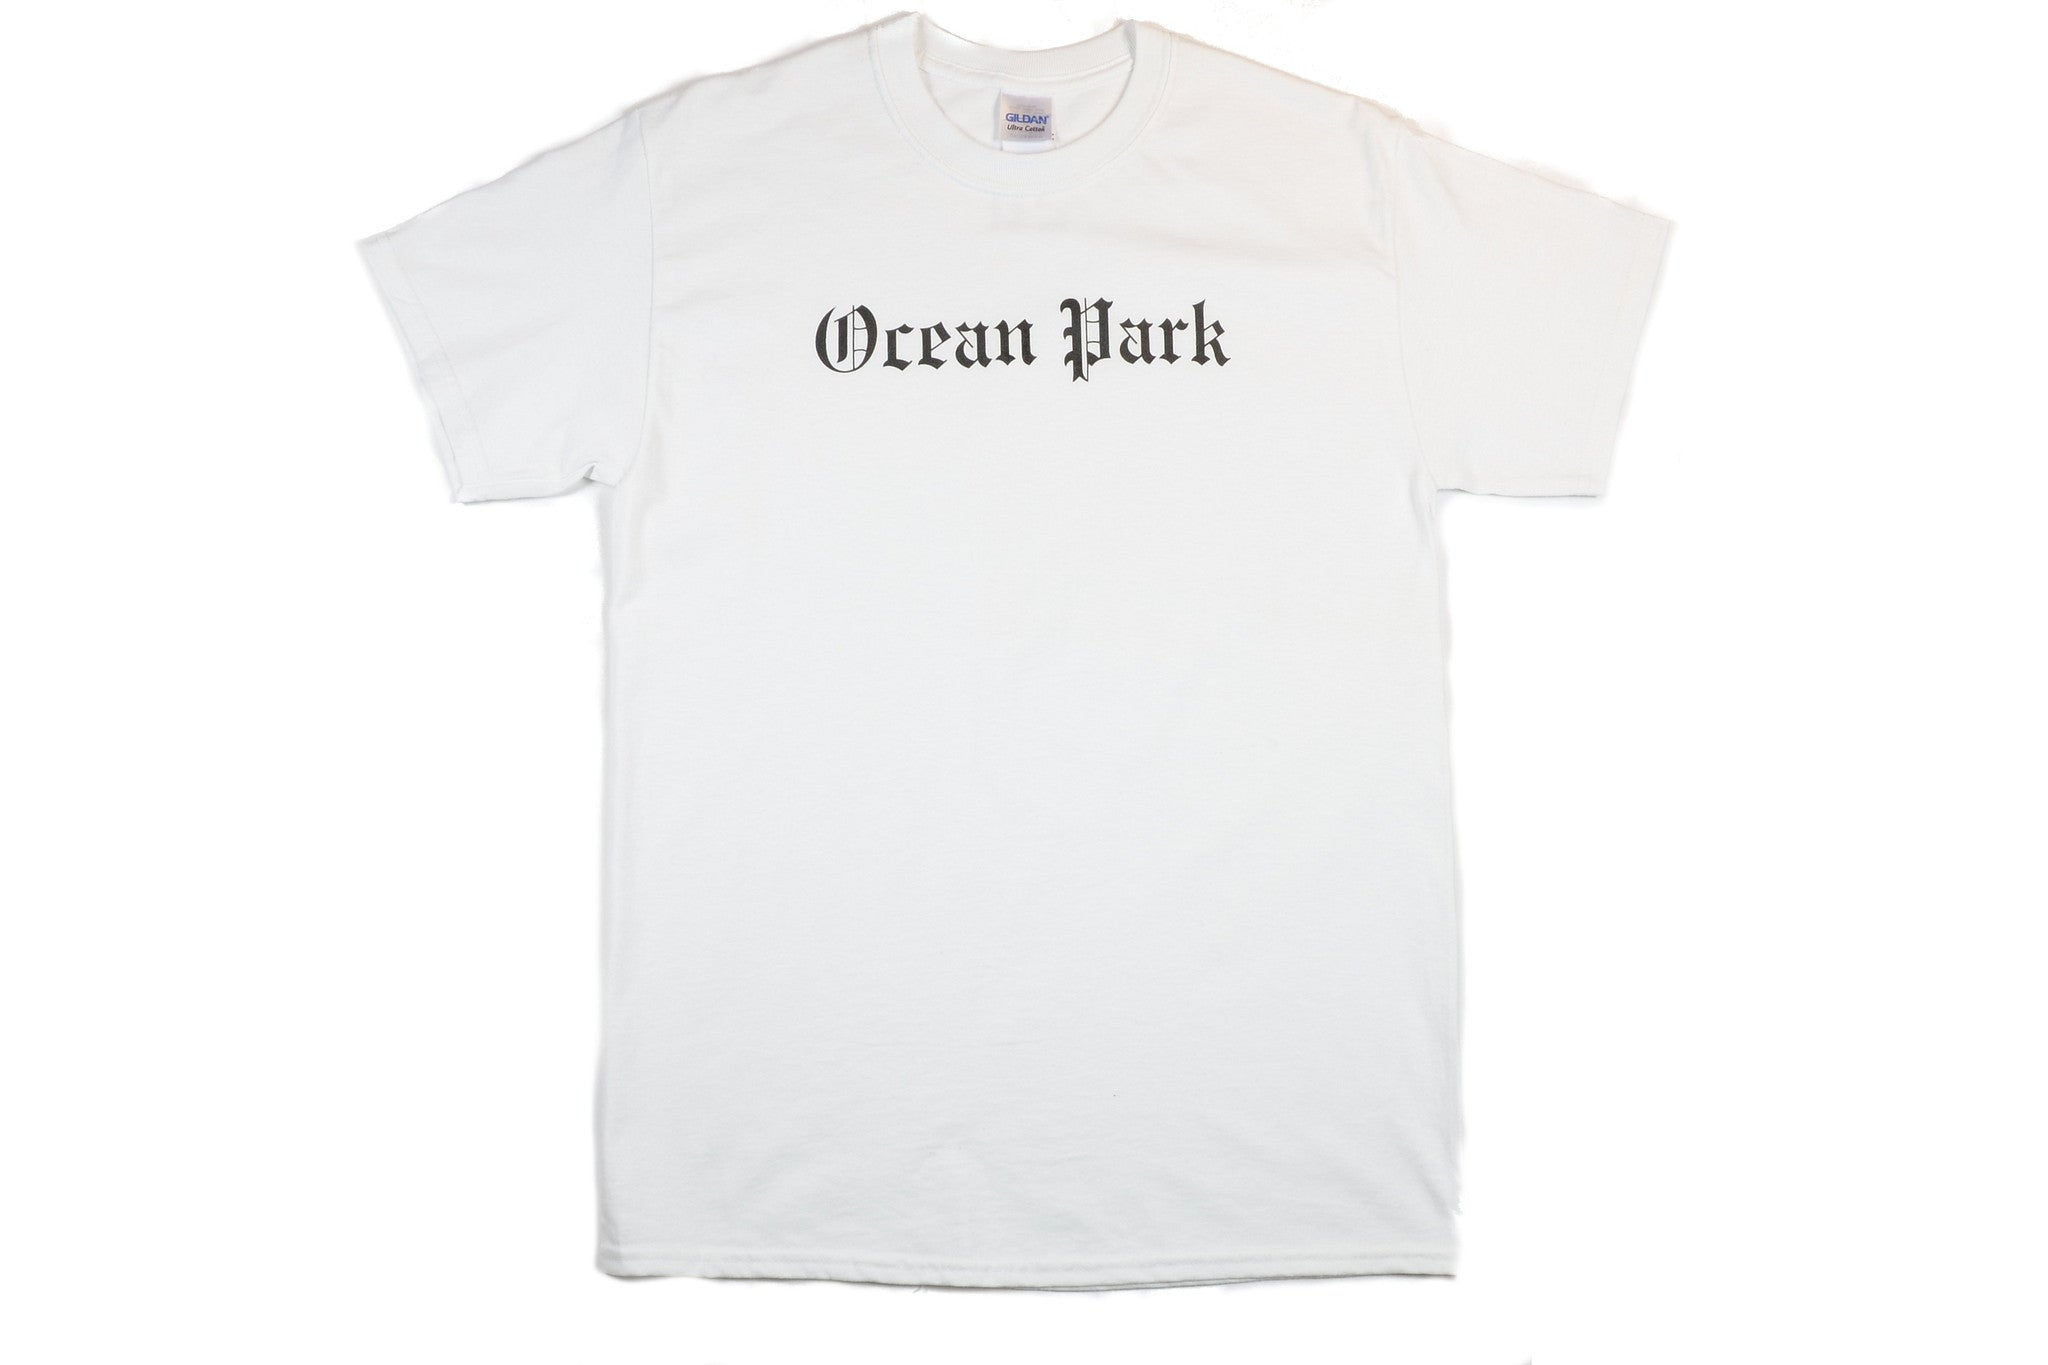 OCEAN PARK OLD ENGLISH STYLE TEE